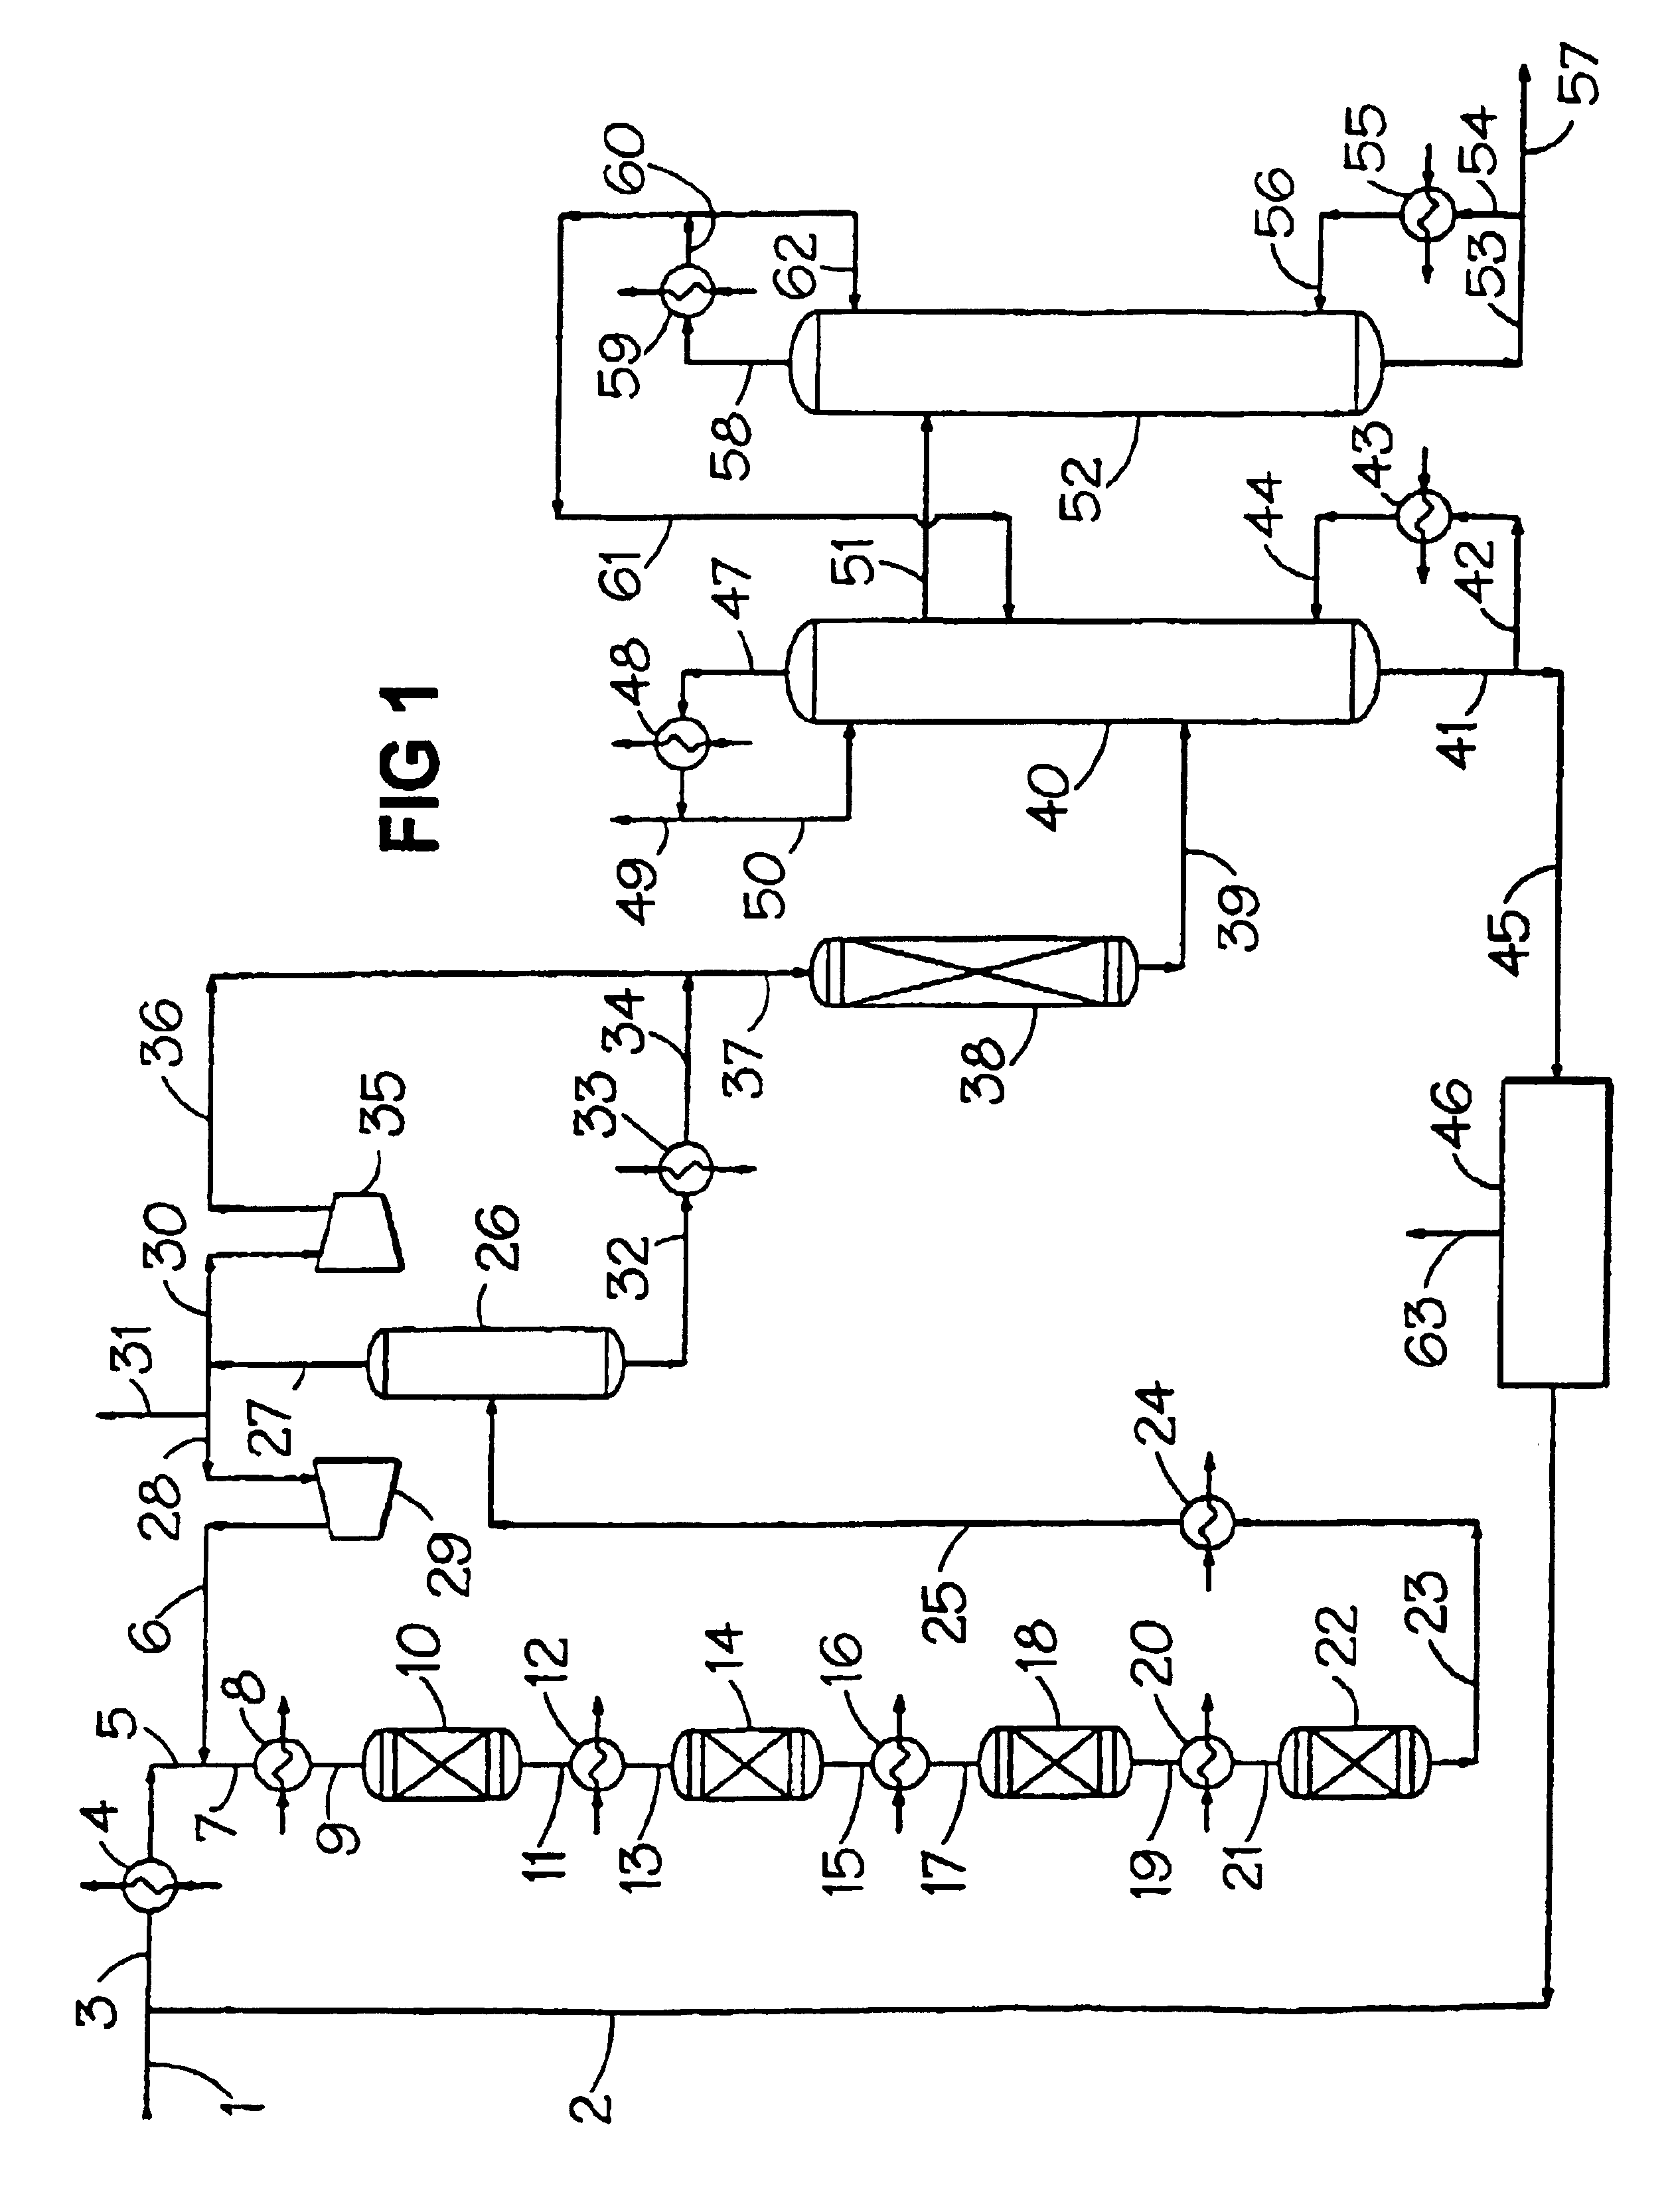 acetaldehyde flowsheet Flowsheet of calcium carbide manufacture 25 14 plant layout 26  to the synthesis of organic chemicals such as acetaldehyde.